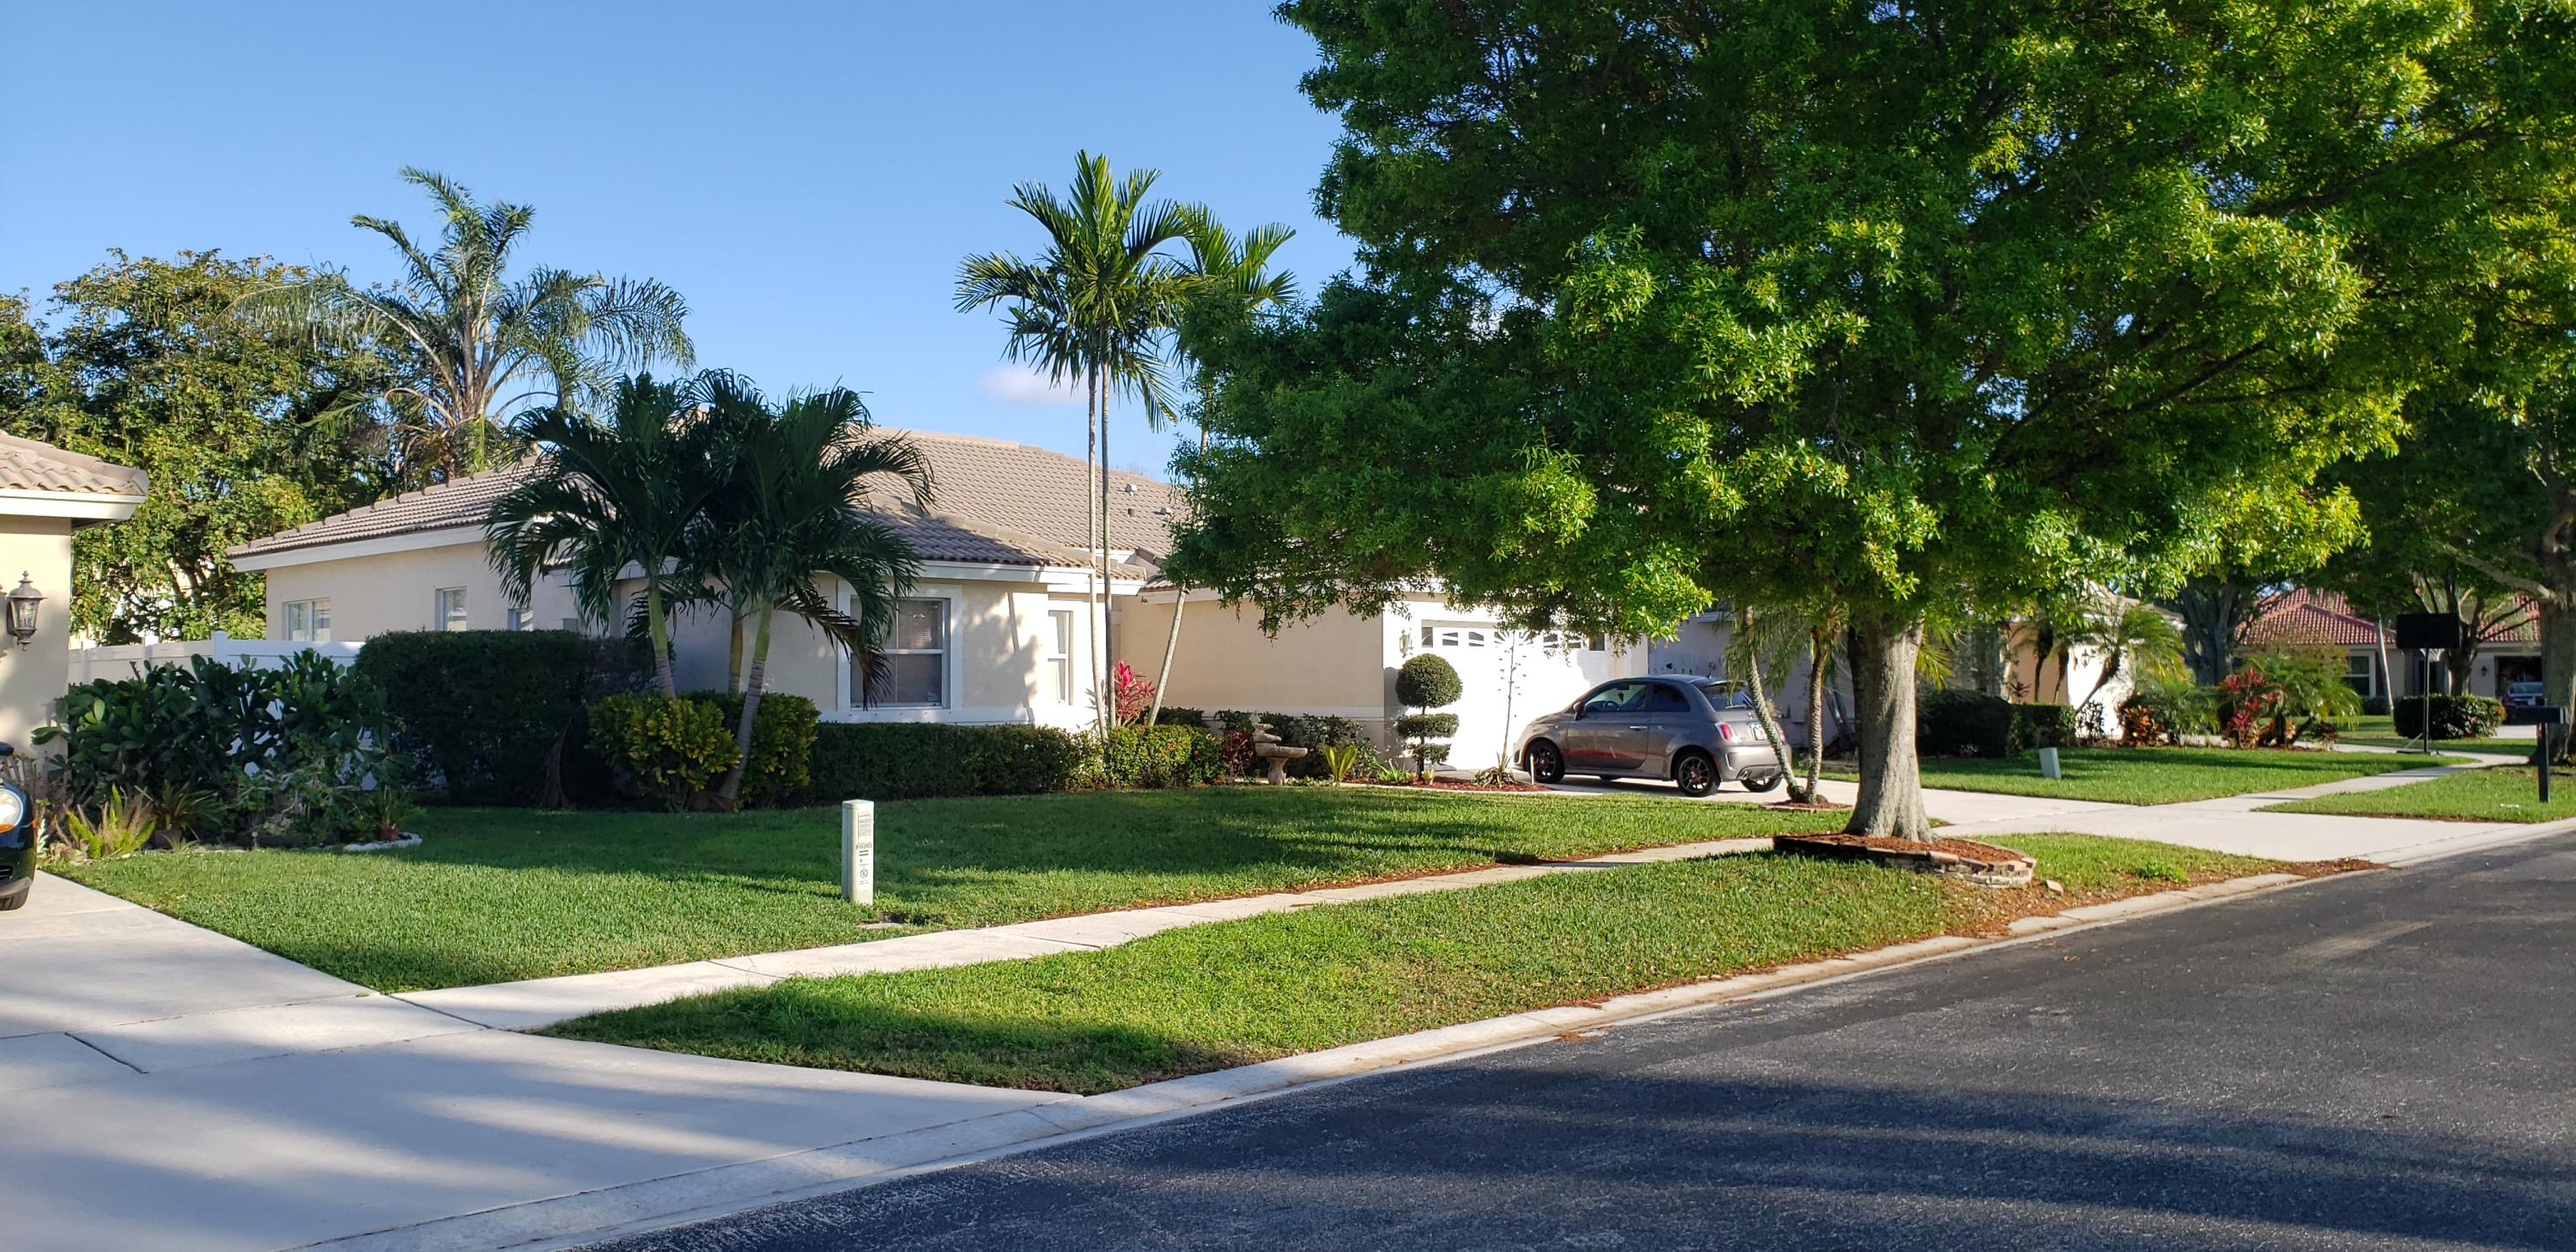 Home for sale in Las Colinas Village Lake Worth Florida